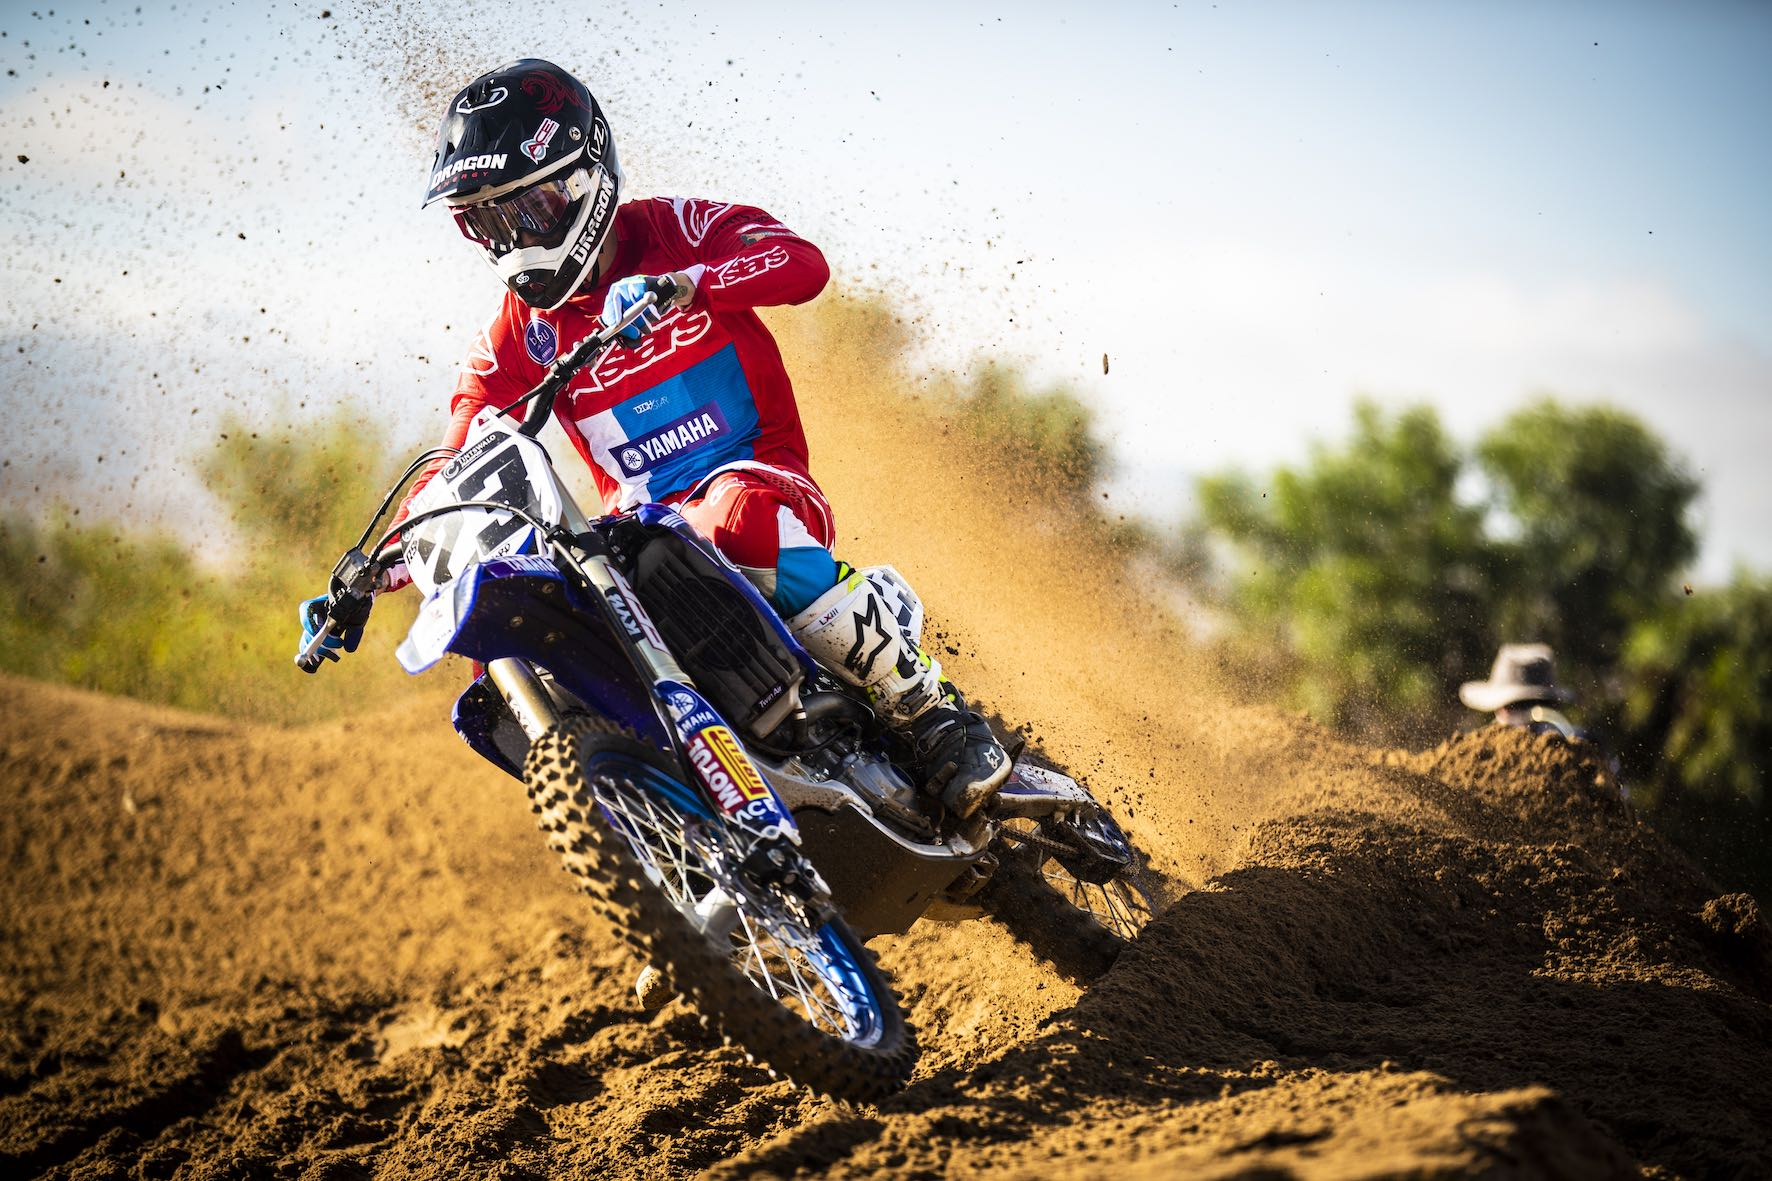 Anthony Raynard winning the MX2 Class at Round 2 of the 2019 TRP Distributors South African National Motocross Championship